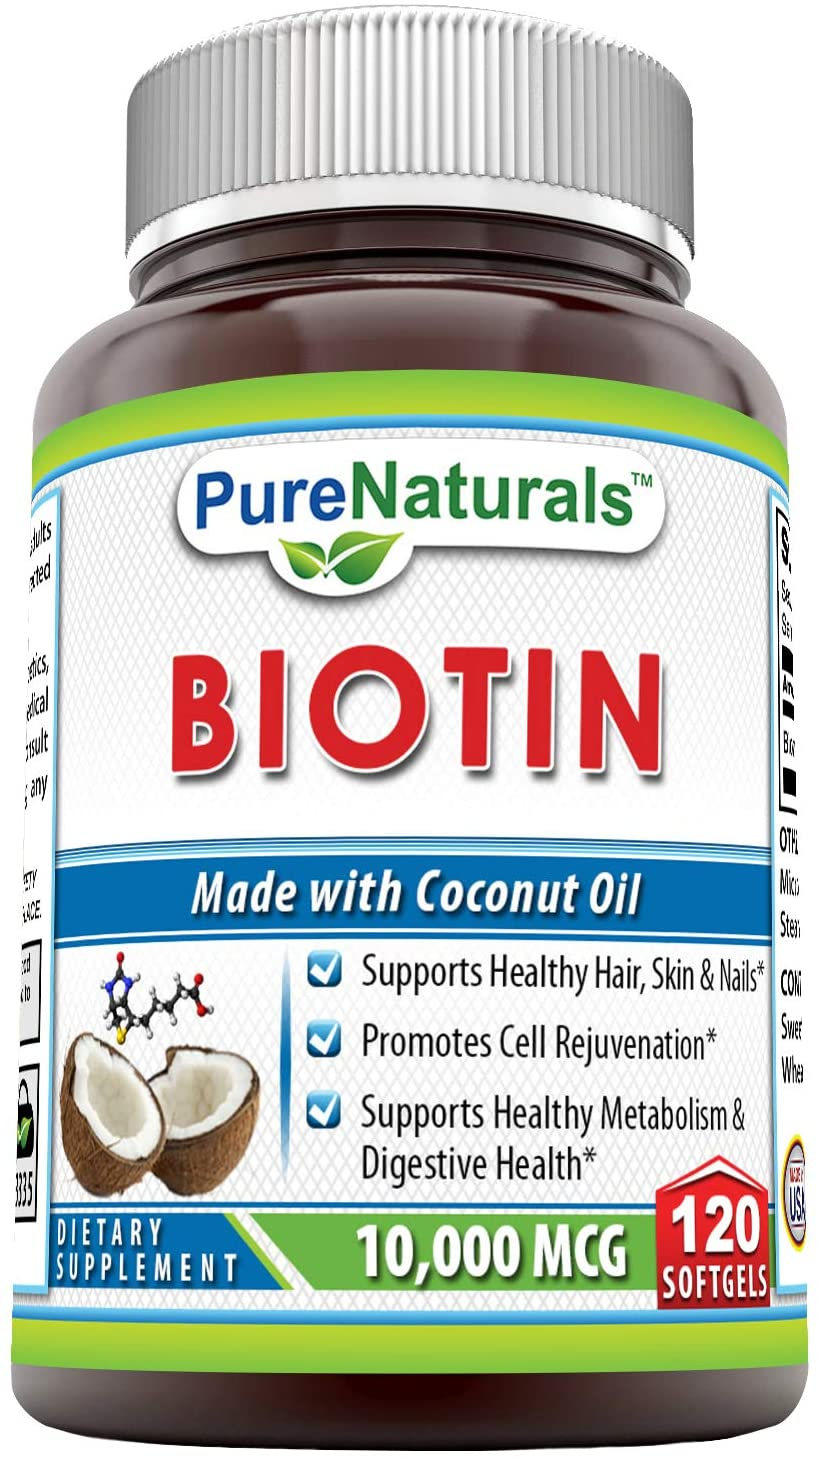 Pure Naturals Biotin Made with Coconut Oil Dietary Supplement - 10,000mcg - 120 Softgels - Supports Healthy Hair, Skin & Nails - Promotes Cell Rejuvenation